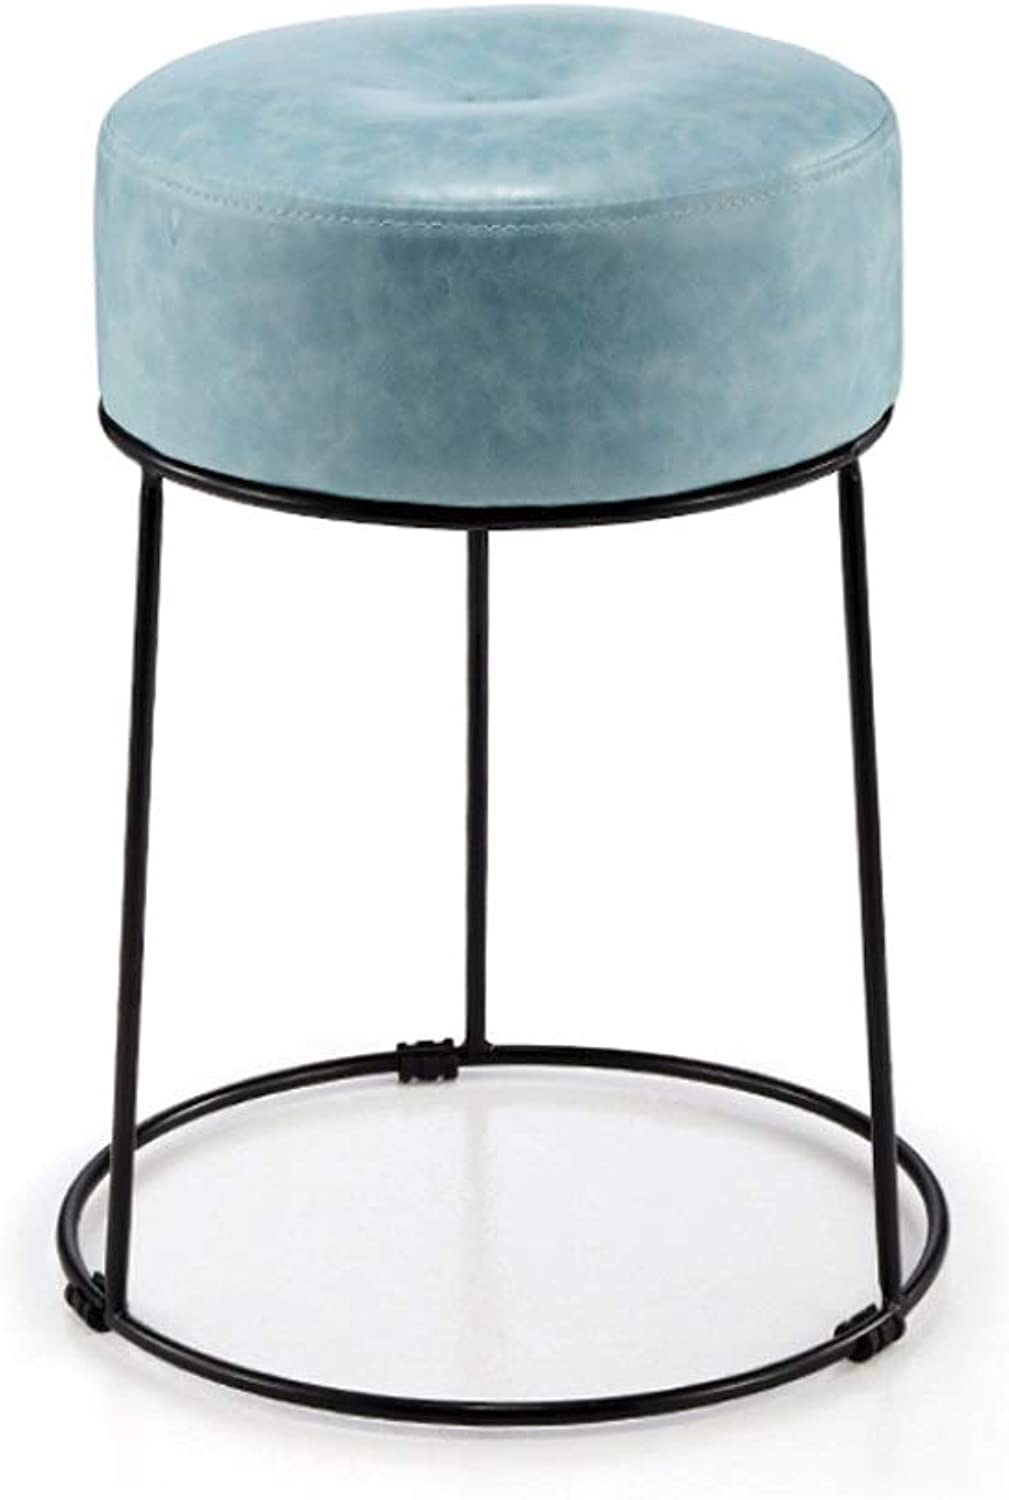 WXL Stool Home Thickening Adult Stool high Stool high Round Stool Dining Table Dining Table Stool Iron Stool Small Chair (color   bluee)